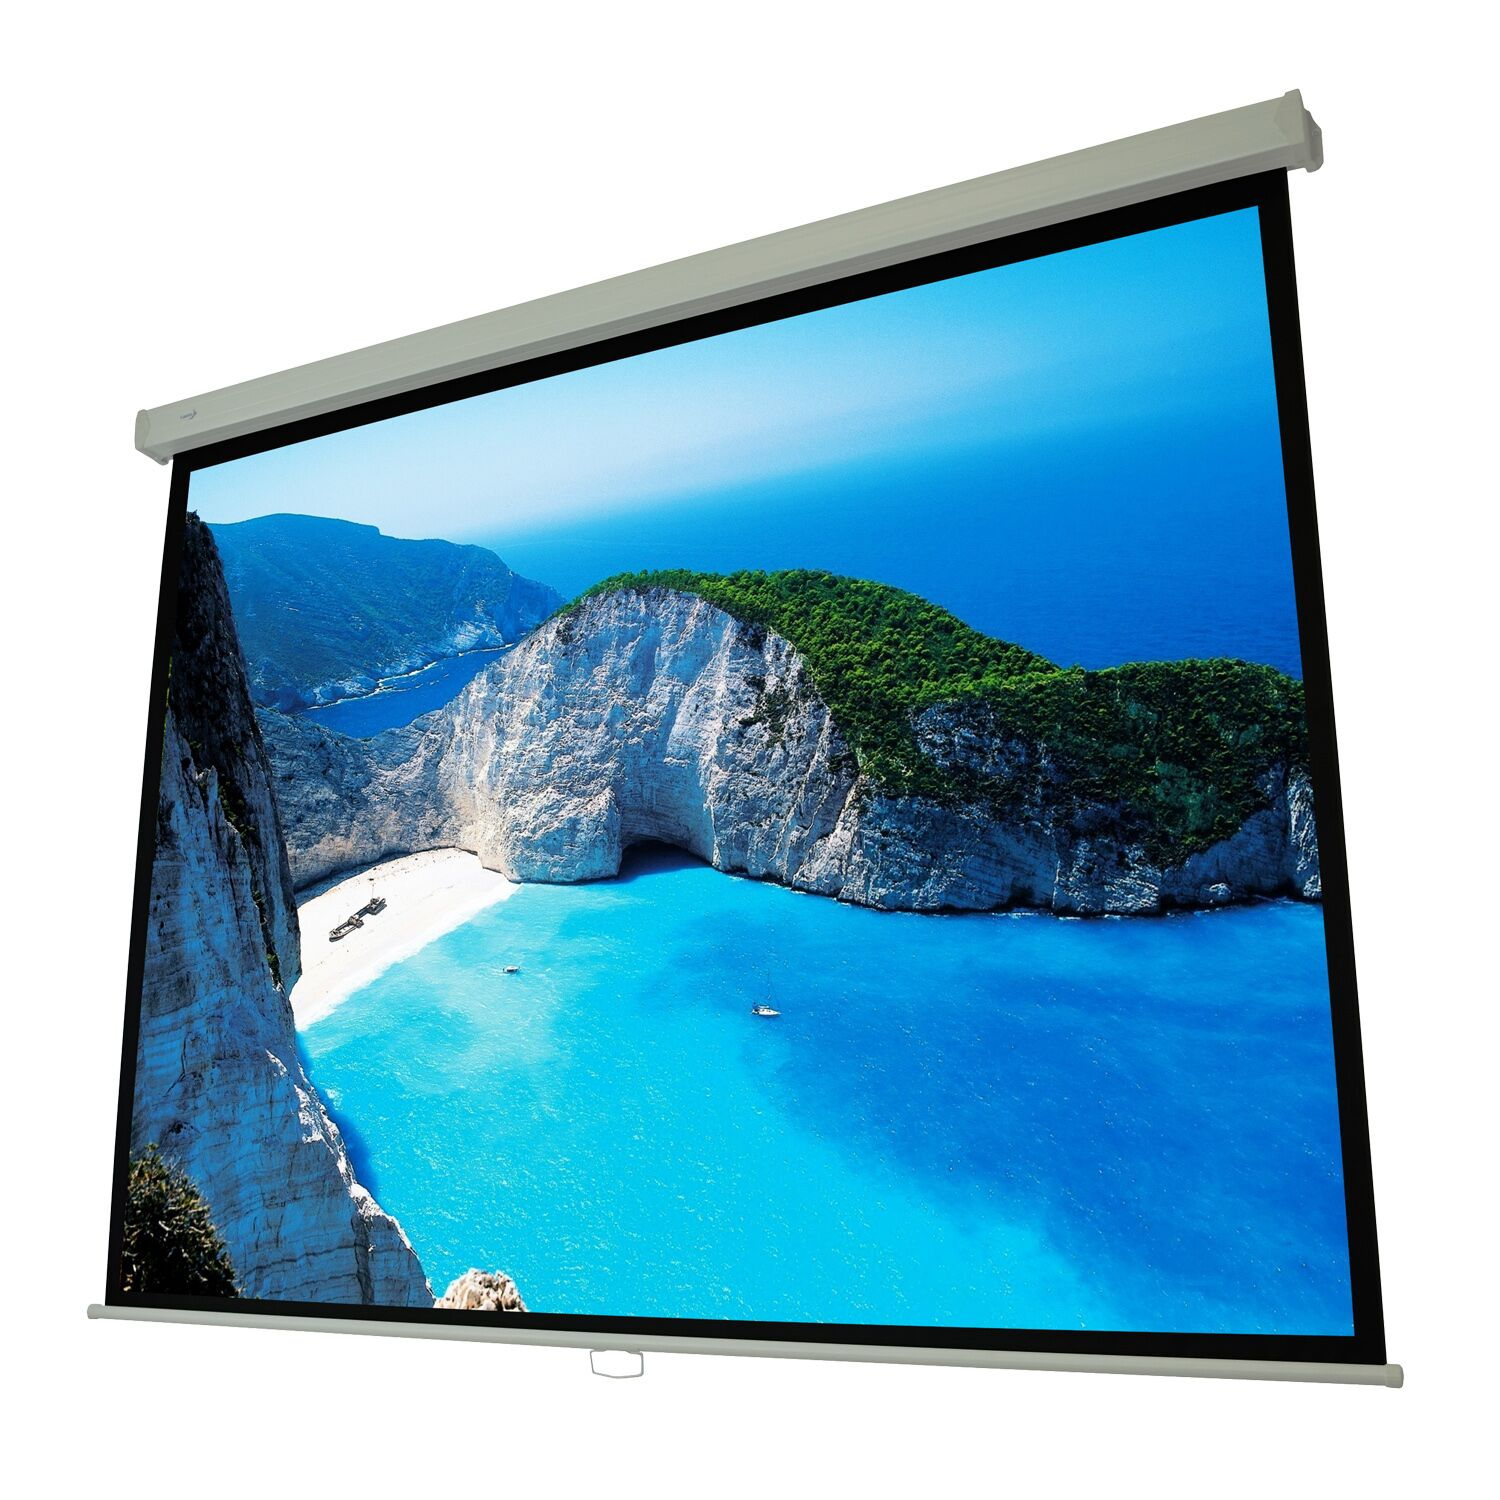 Cinema White Manual Projection Screen Viewing Area: 120